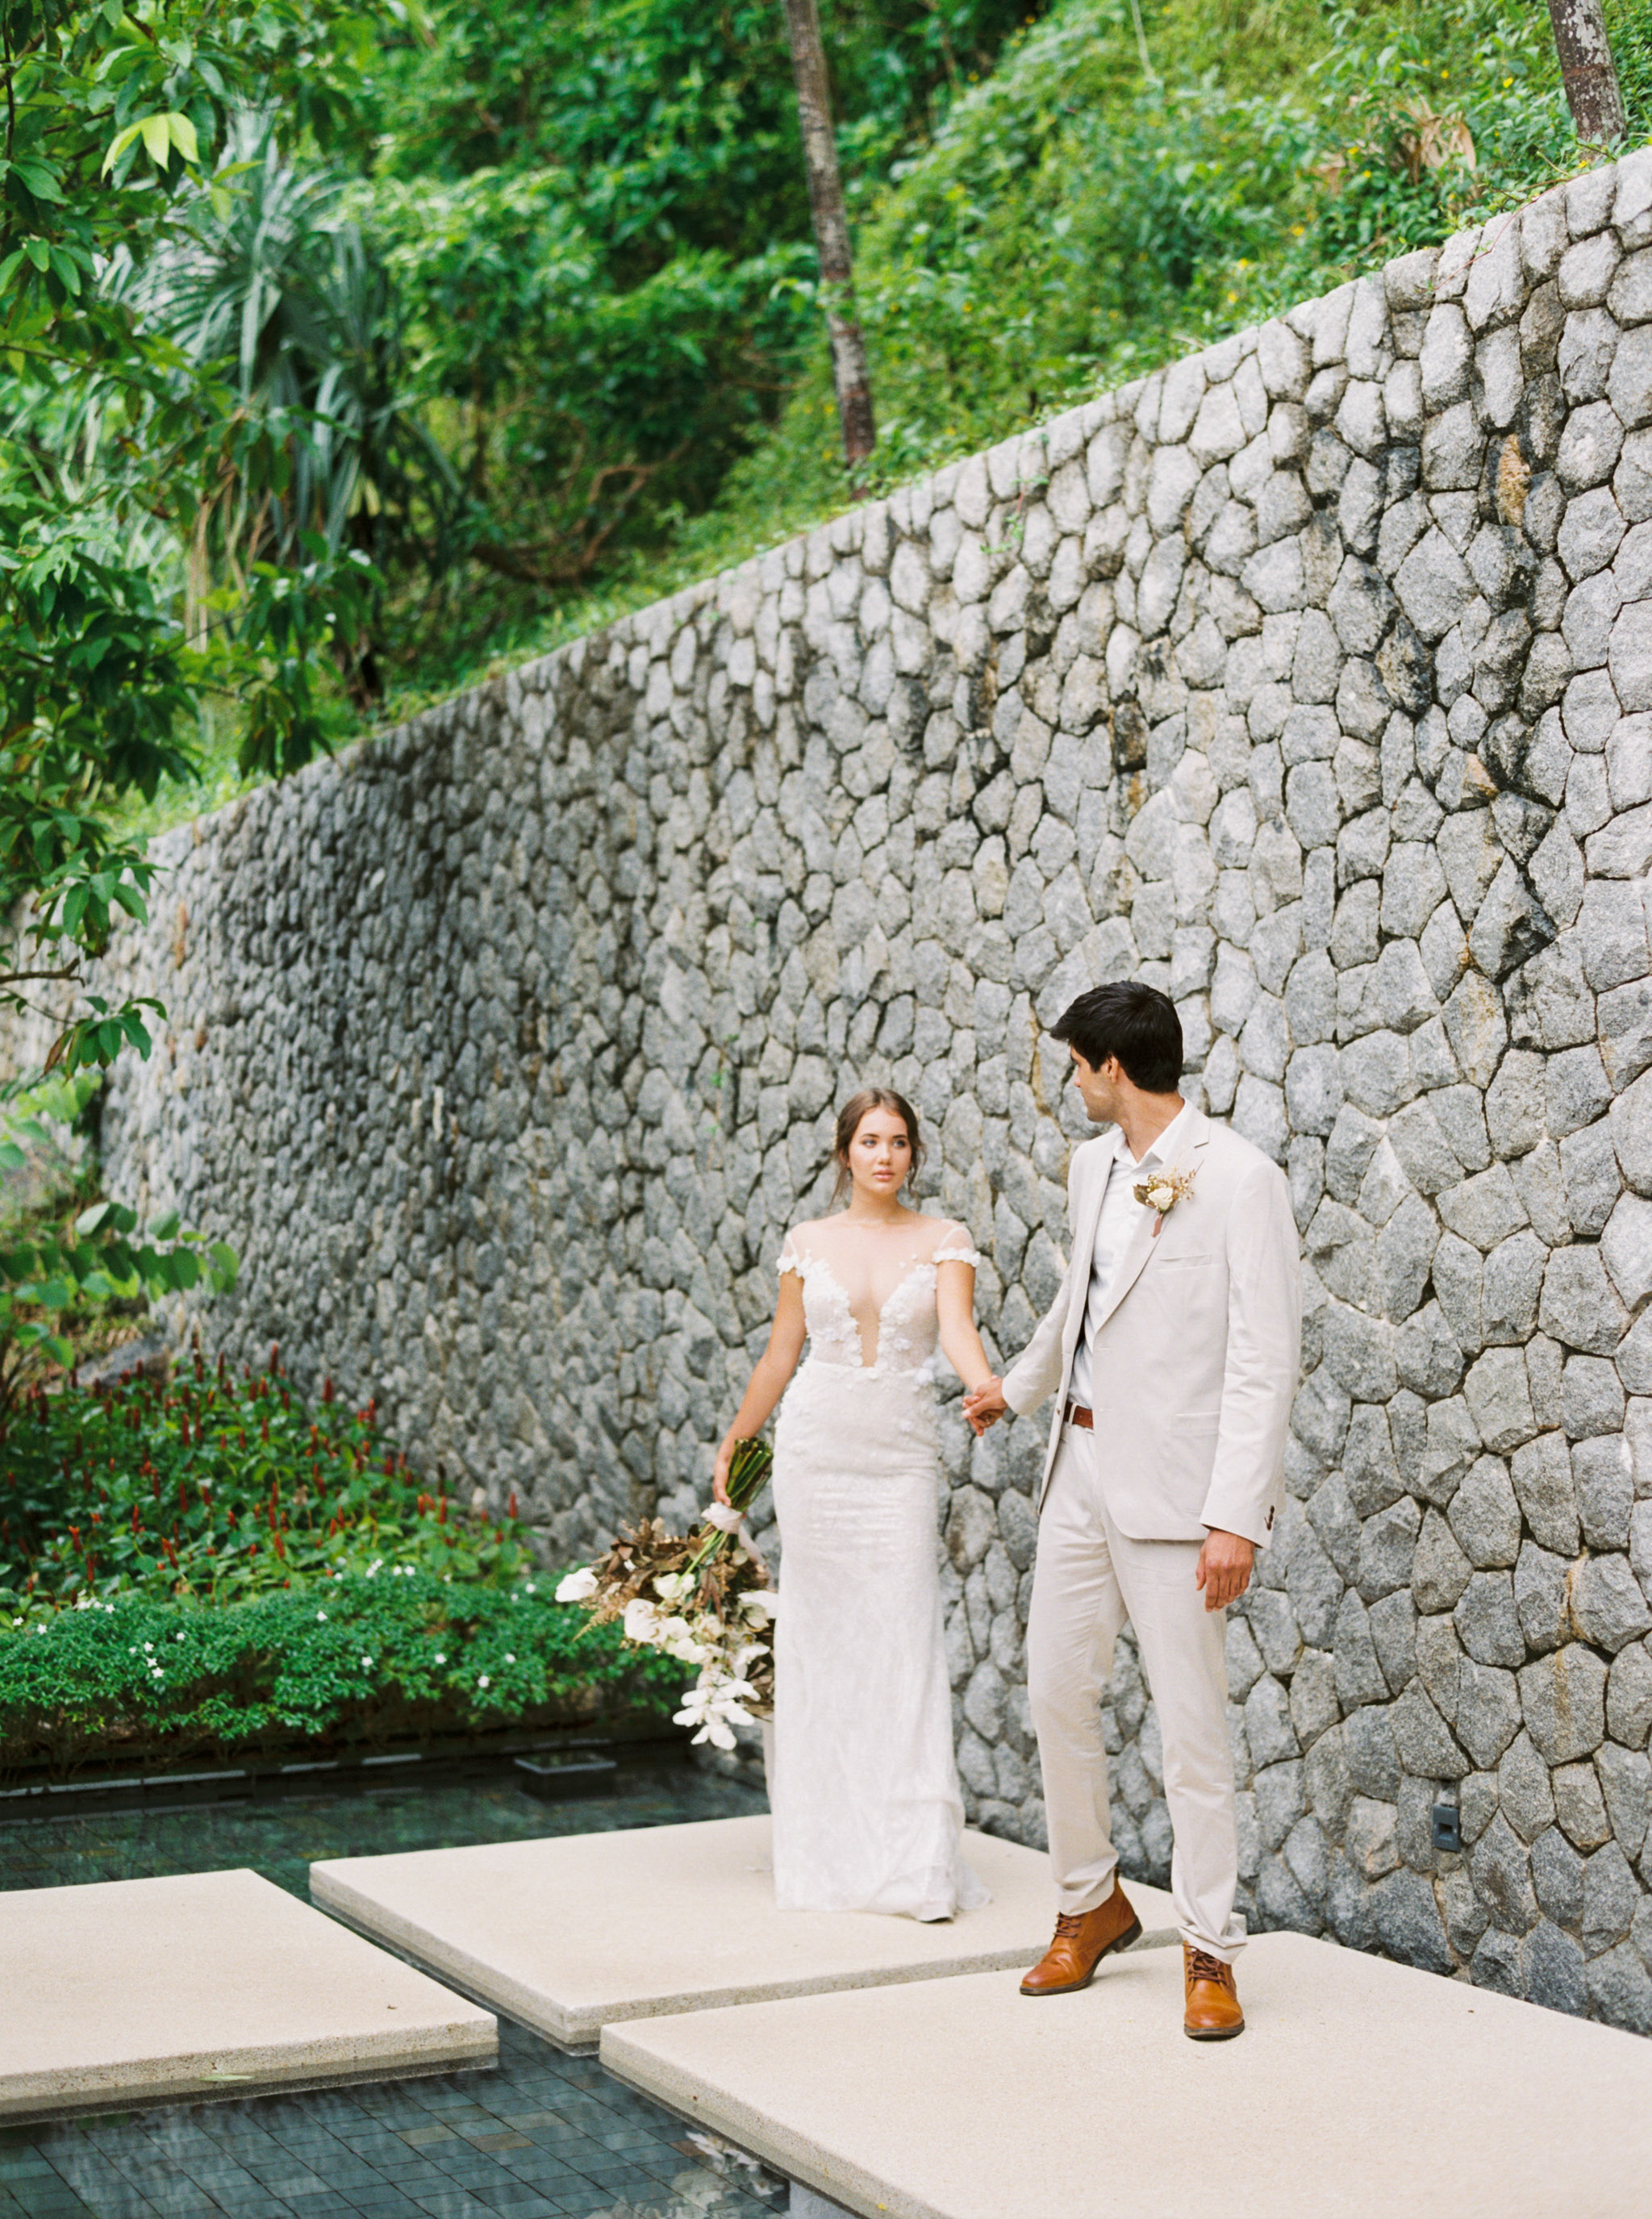 Destination Wedding at The Aquila Luxury Villas in Phuket Thailand Fine Art Film Wedding Photographer Sheri McMahon-00026-26.jpg